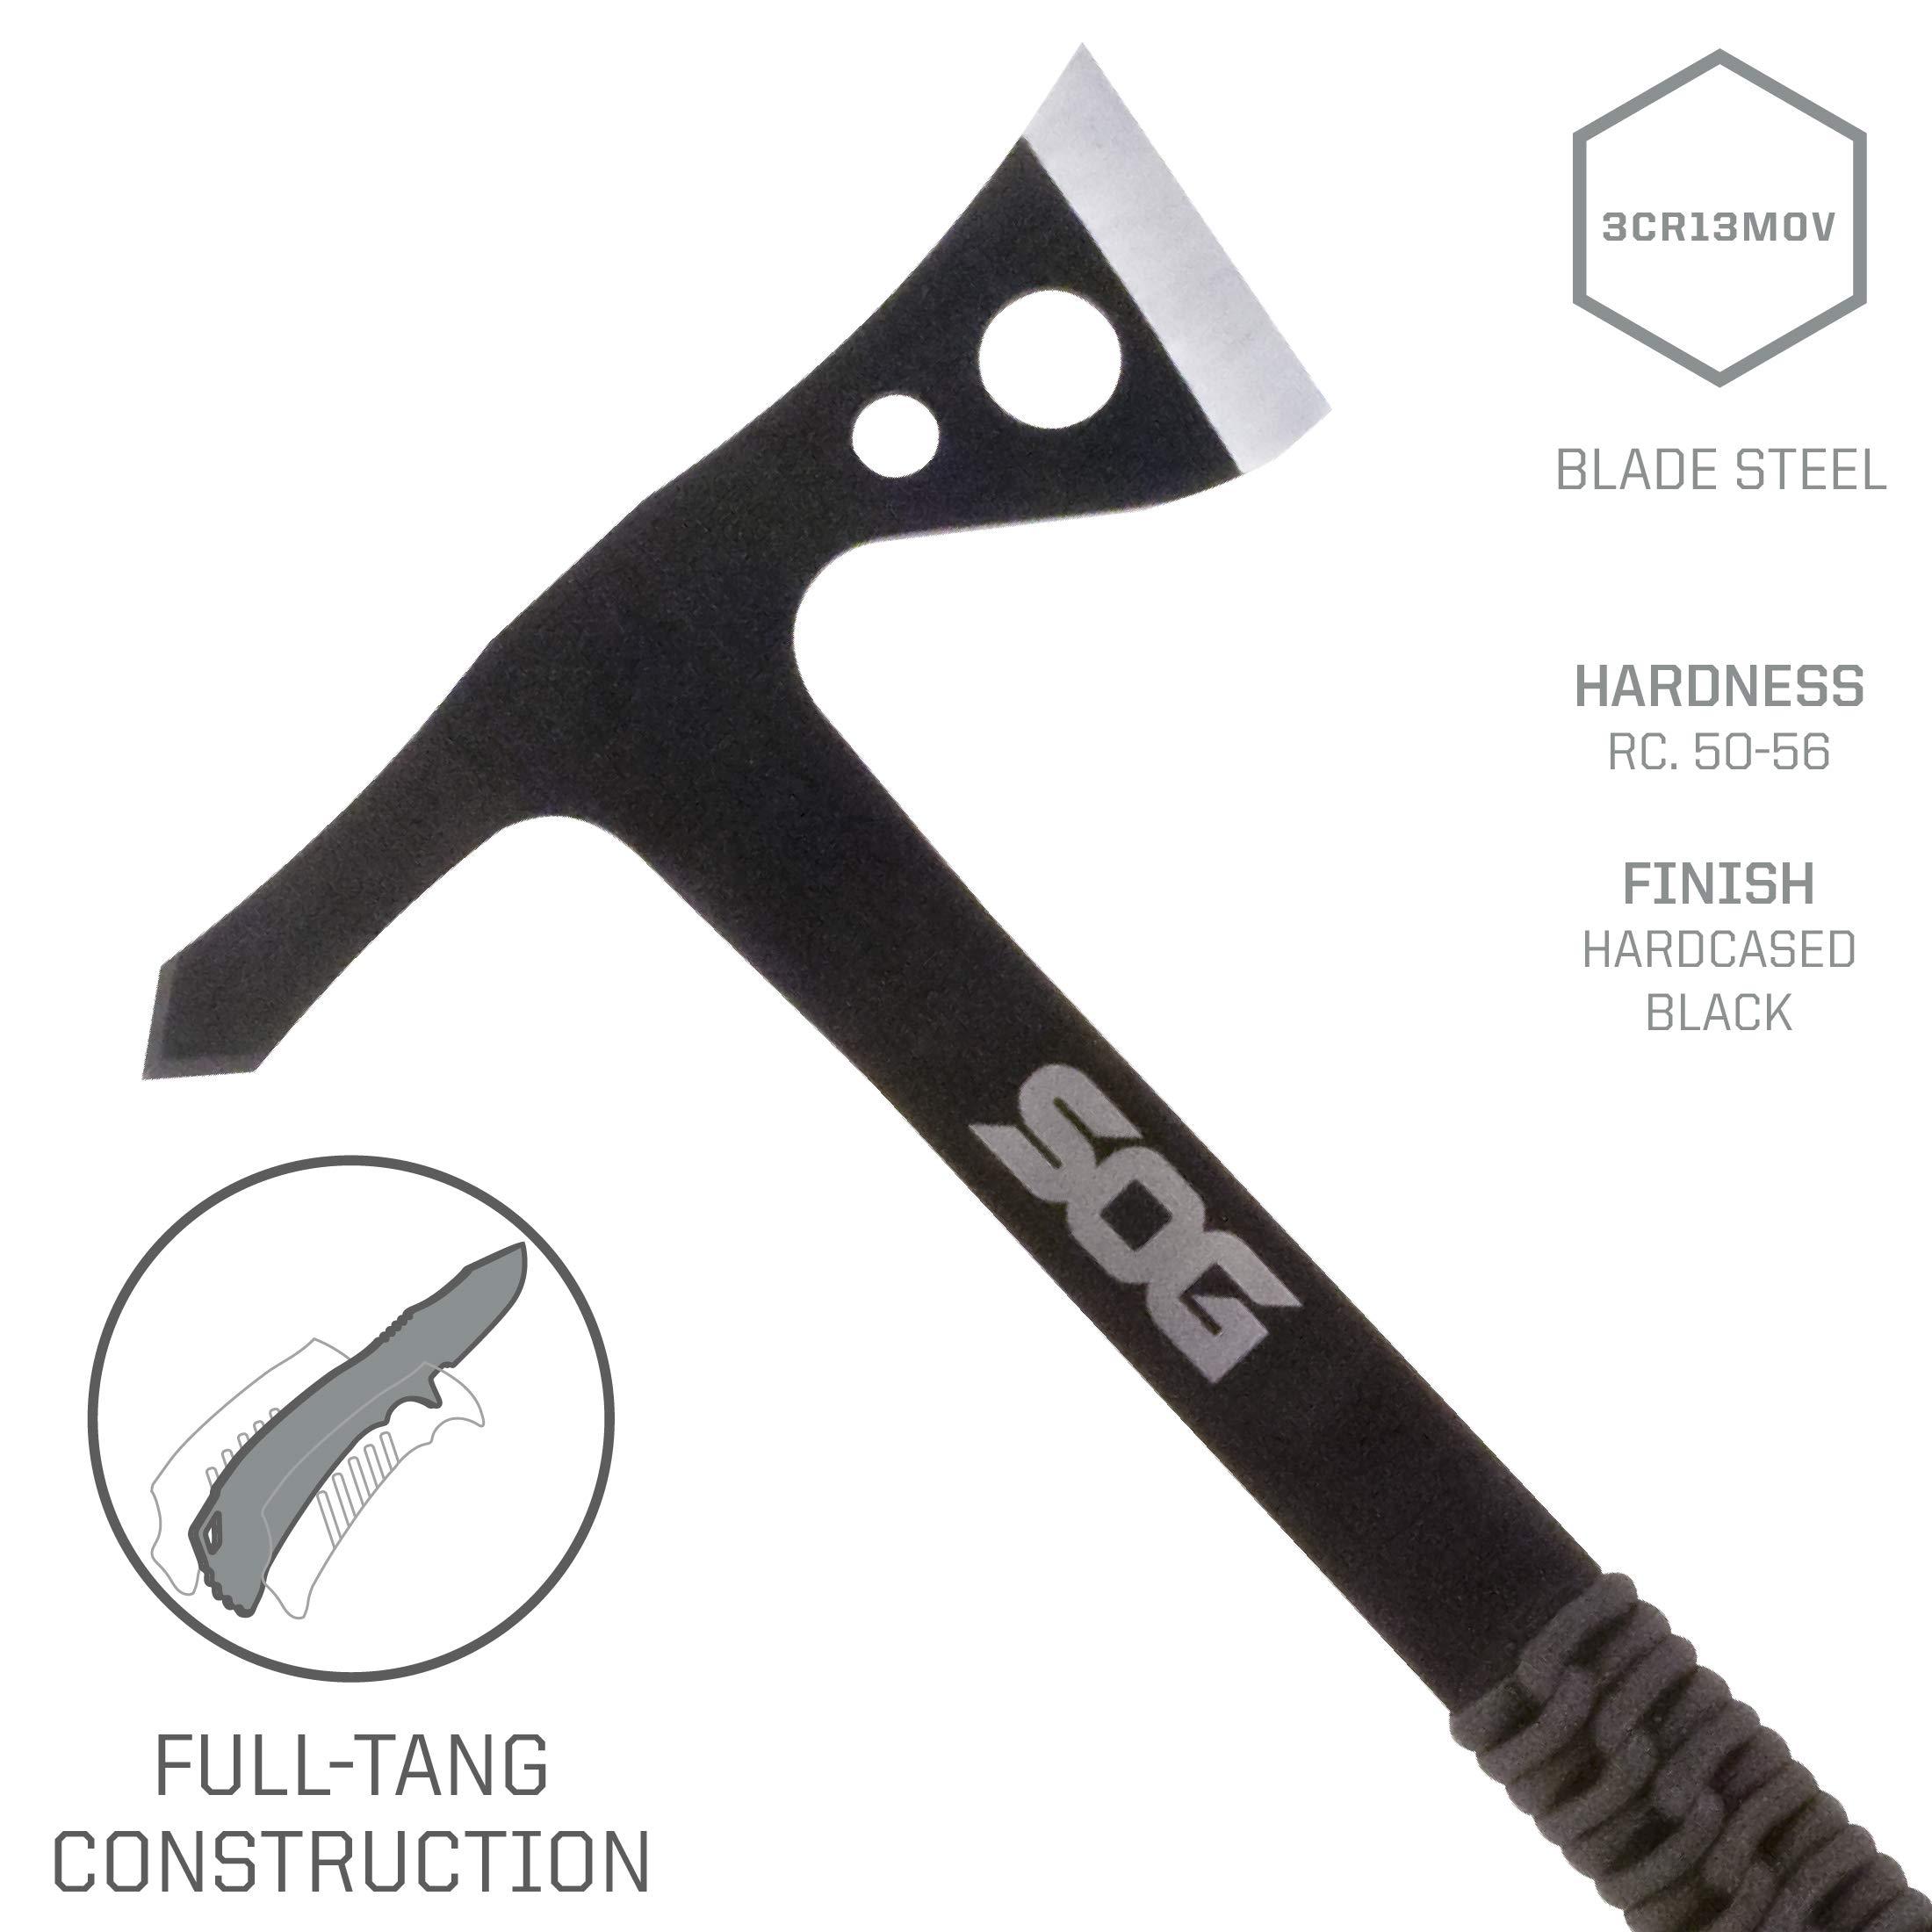 SOG Tomahawk Pack of 3 - Throwing Hawks Throwing Axe Set and Full Tang Tactical Hatchet Pack w/ 1.75 Inch Blades and Camping Axe Sheath (TH1001-CP) by SOG Specialty Knives (Image #3)